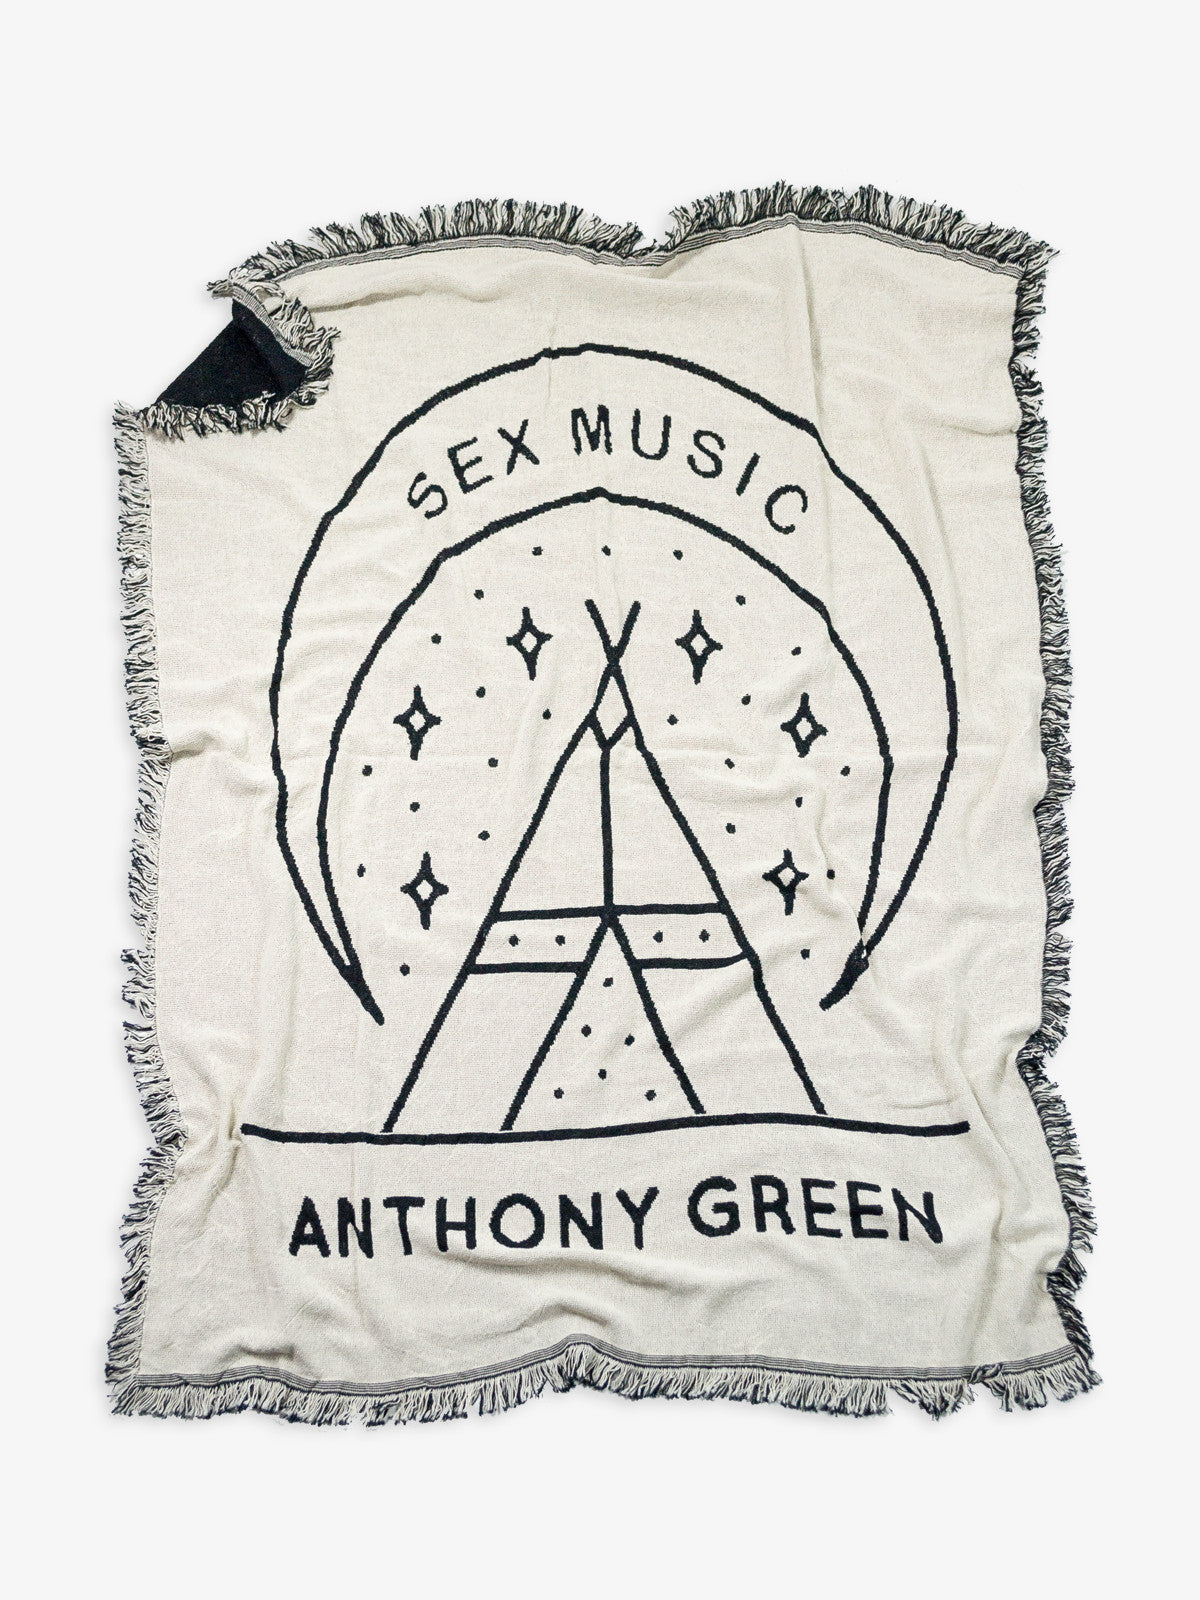 Anthony Green - Sex Music Woven Blanket - MerchLimited - 1